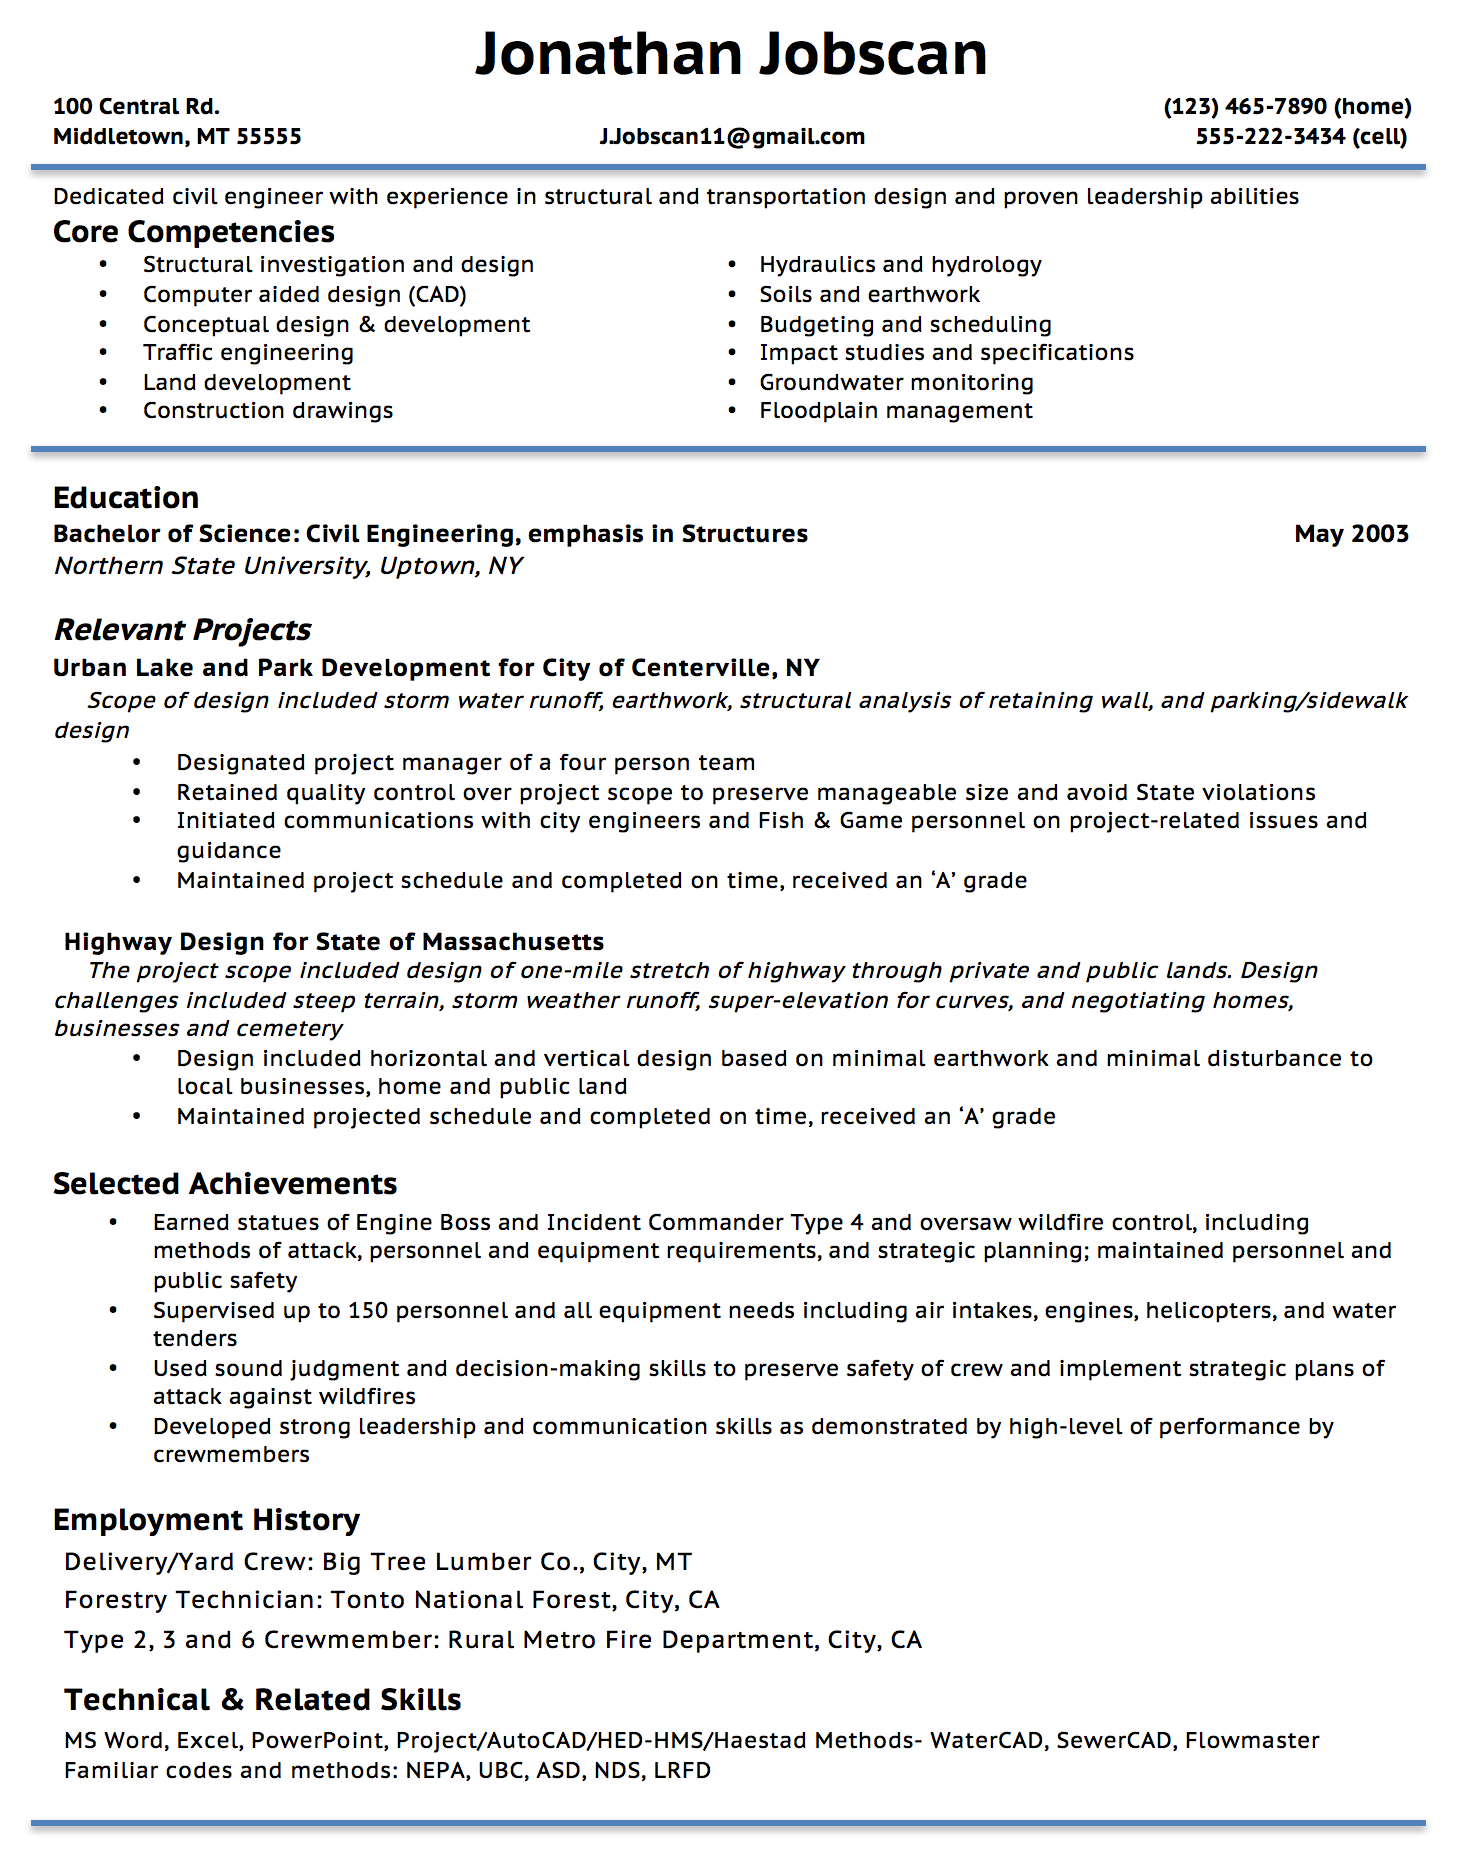 Opposenewapstandardsus  Splendid Resume Writing Guide  Jobscan With Fascinating Example Of A Functional Resume Format With Endearing Fedex Resume Also Resume Builder For Mac In Addition Researcher Resume And Resume For Janitor As Well As Send Resume Additionally Resume Objective Sales From Jobscanco With Opposenewapstandardsus  Fascinating Resume Writing Guide  Jobscan With Endearing Example Of A Functional Resume Format And Splendid Fedex Resume Also Resume Builder For Mac In Addition Researcher Resume From Jobscanco